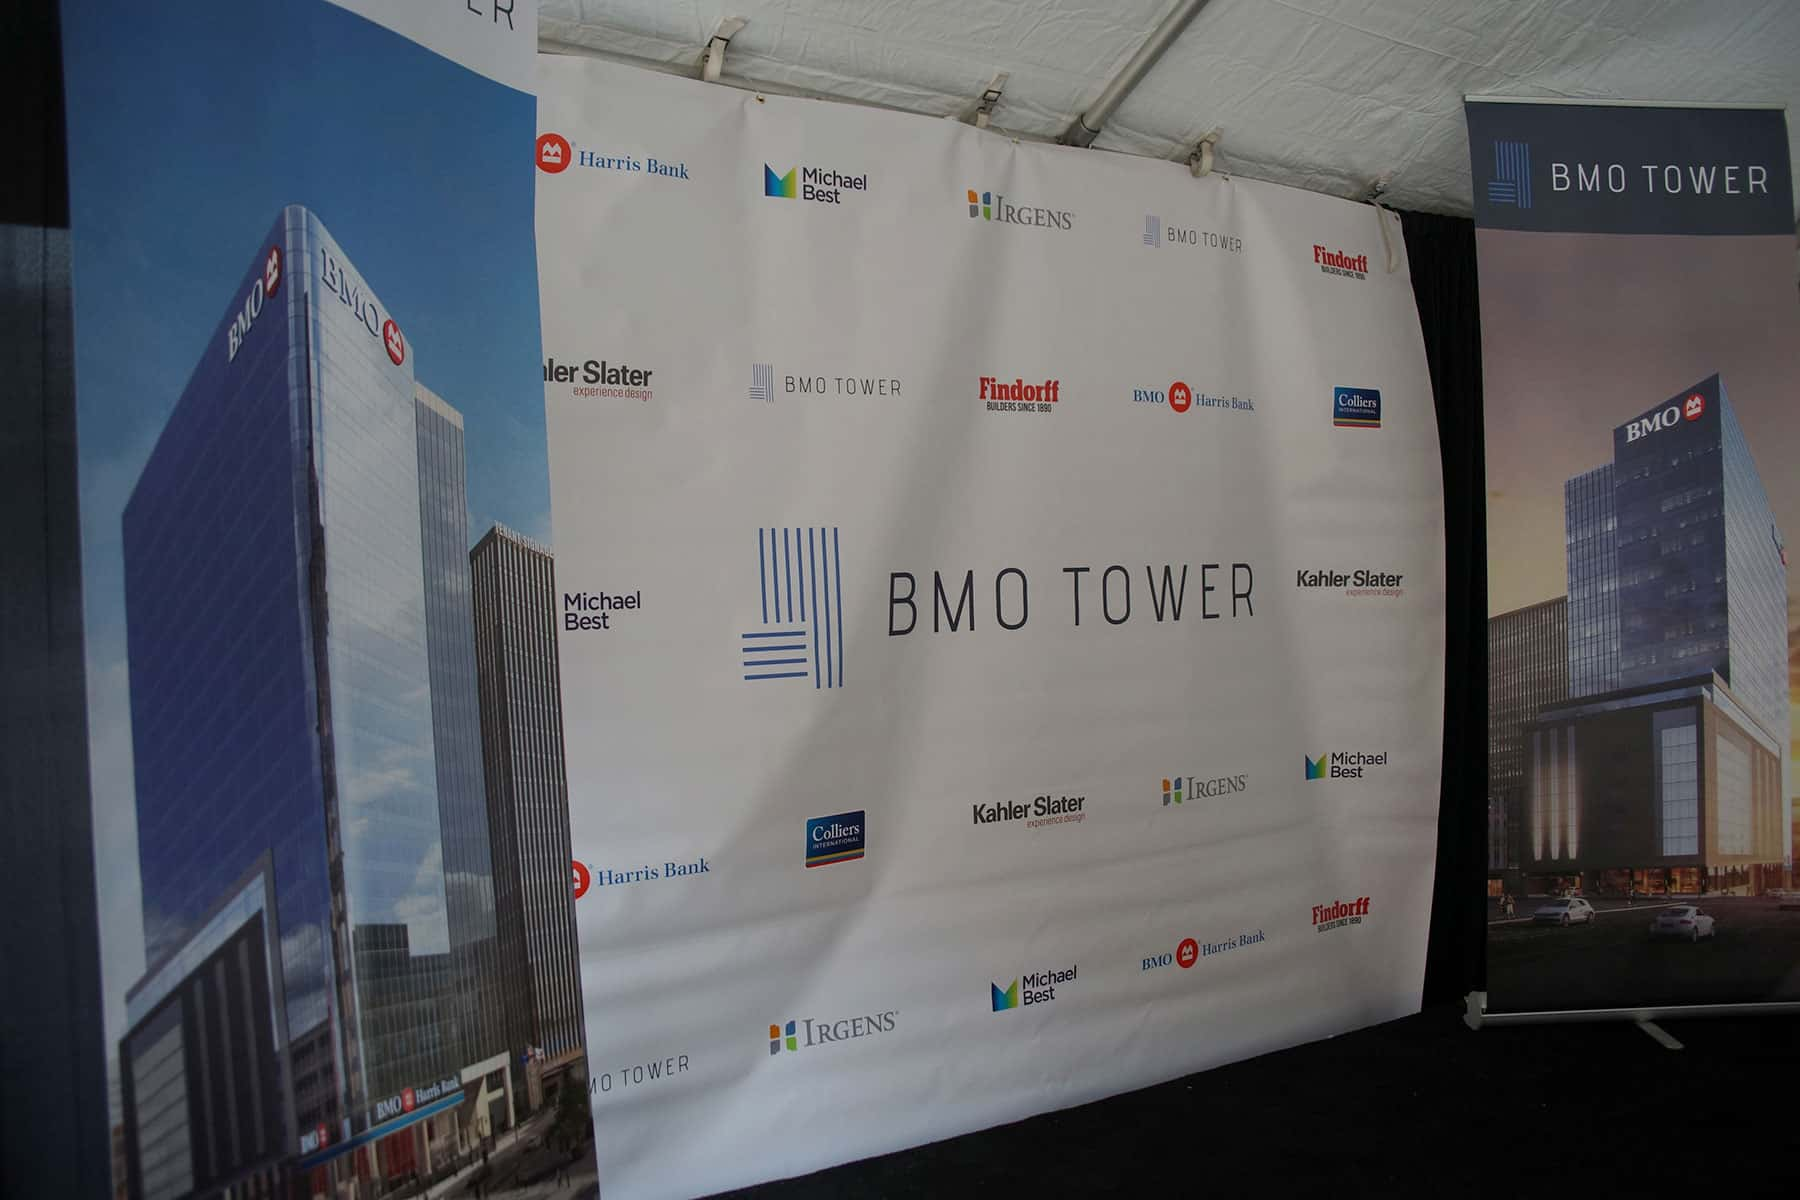 Bmo tower embarks on downtown construction with groundbreaking the 111617bmotower012 malvernweather Gallery